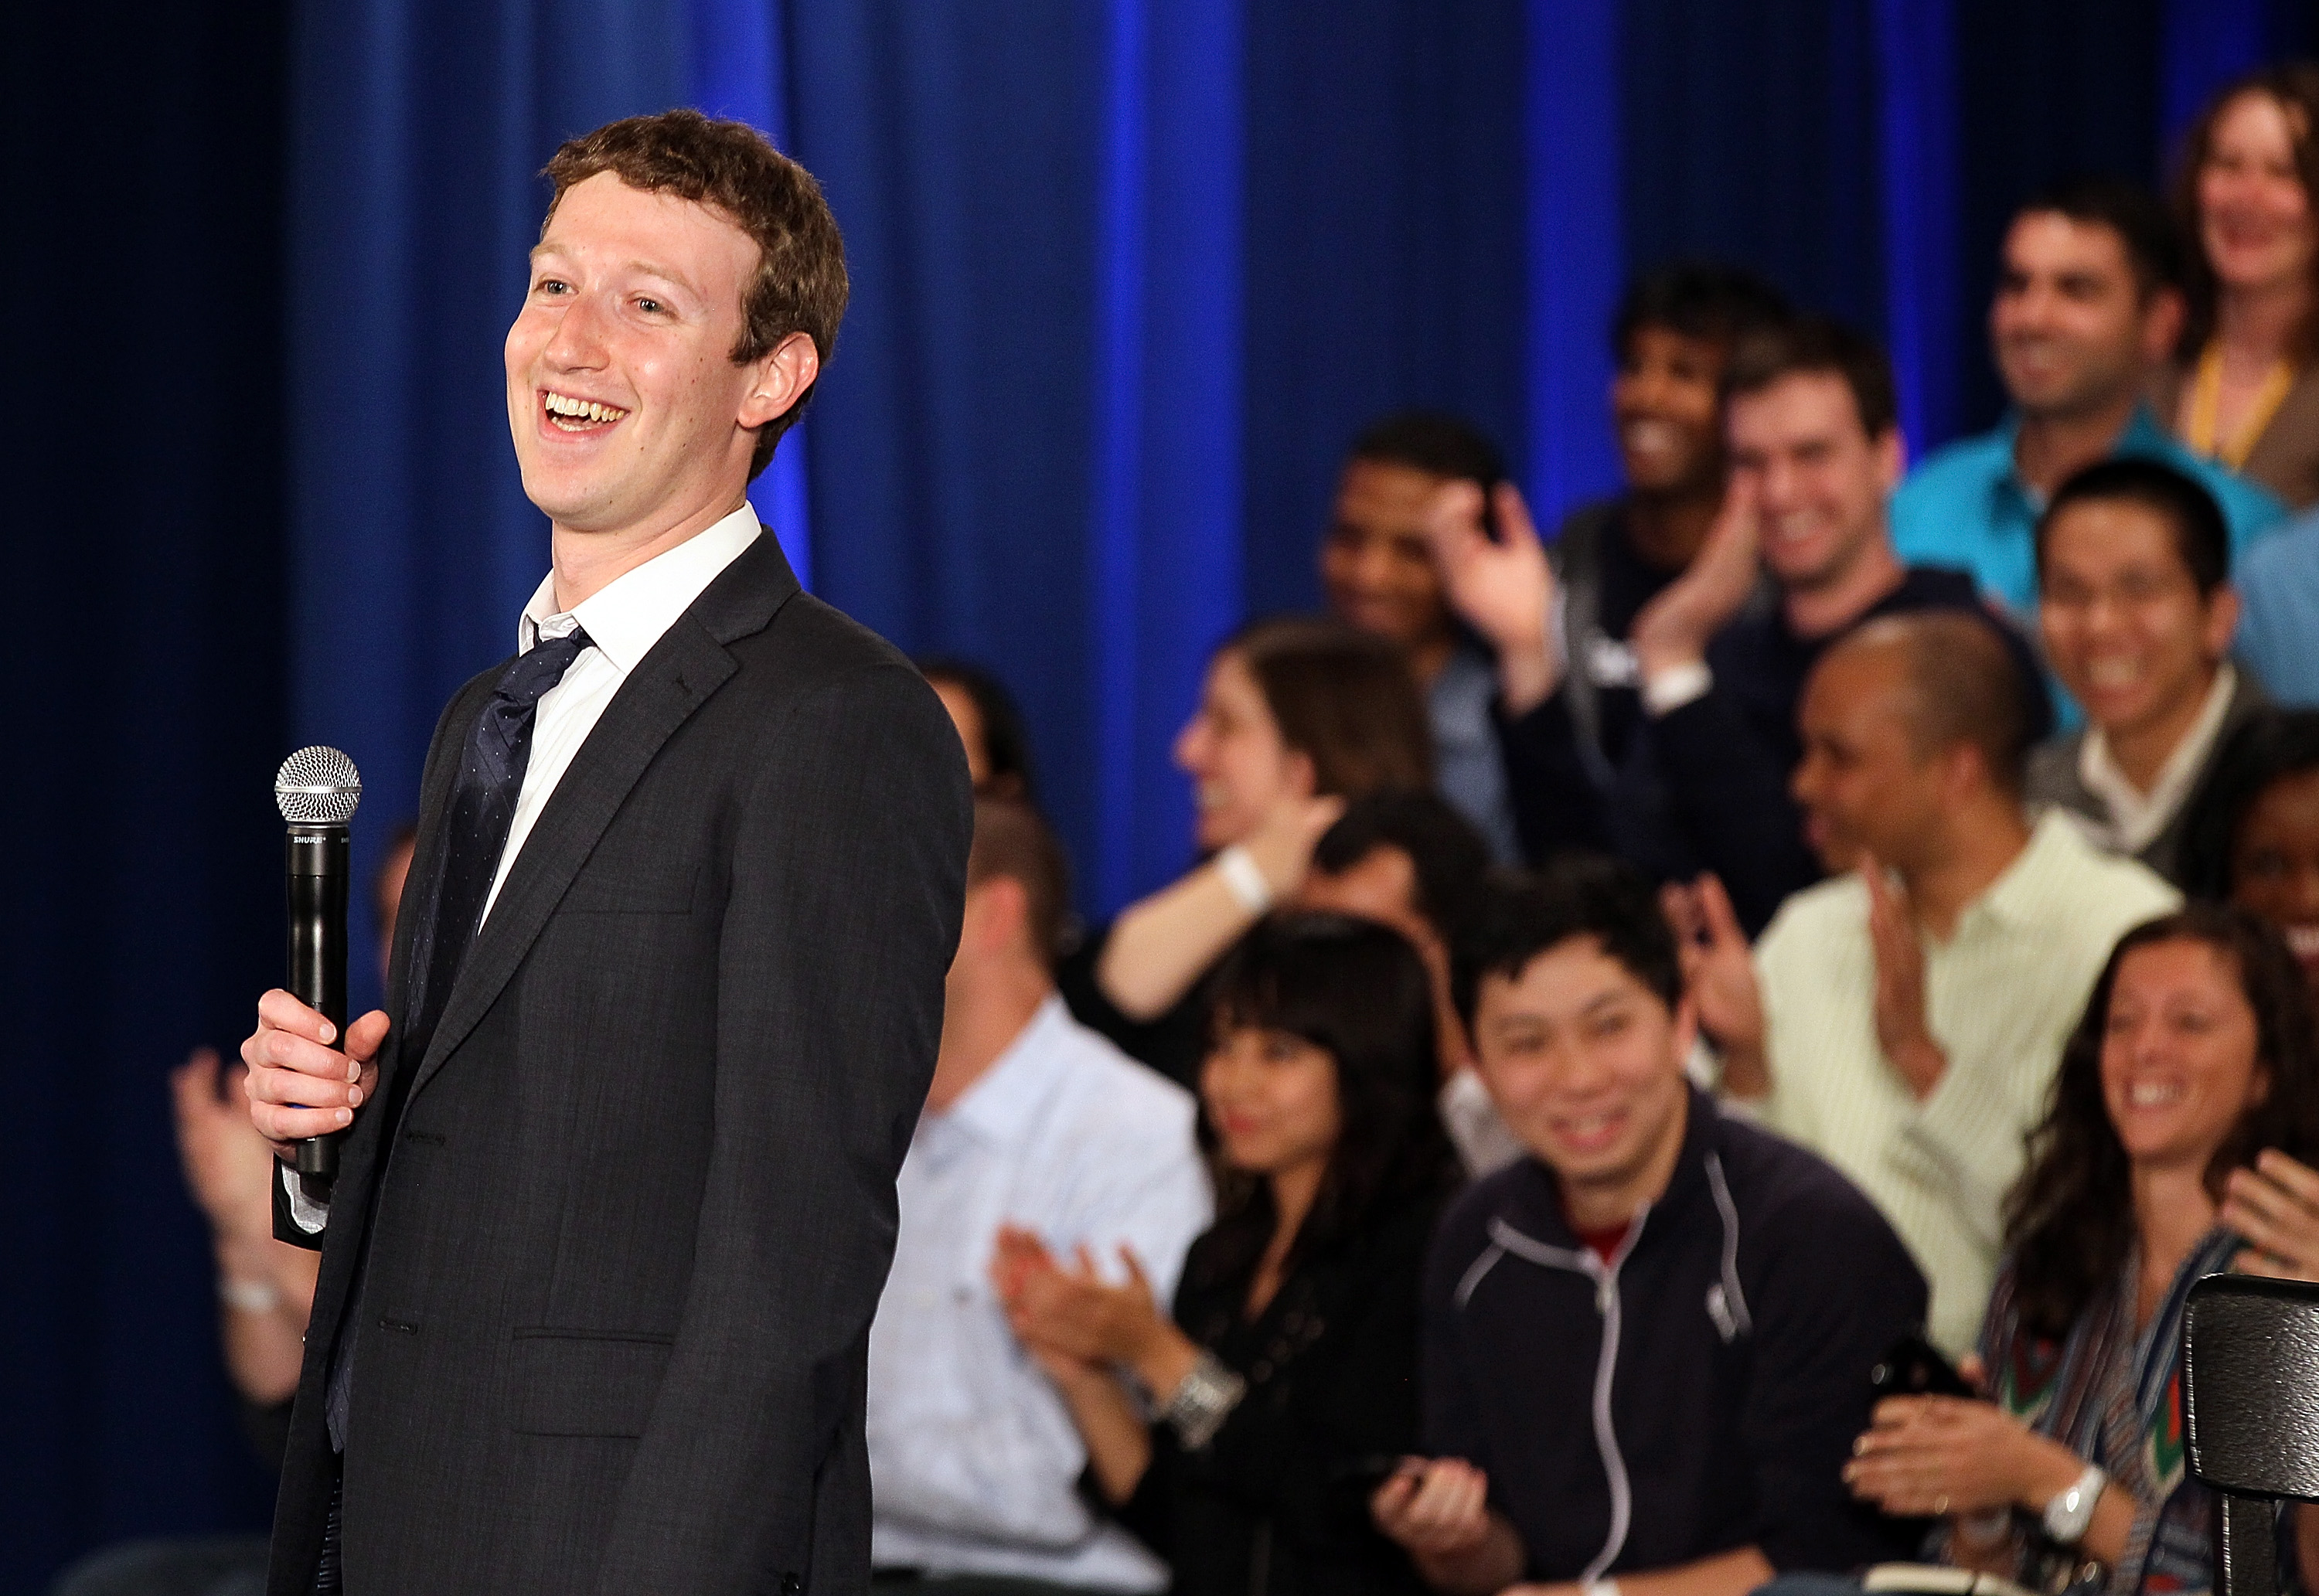 Facebook founder Mark Zuckerberg speaks at Town Hall meeting with President Obama - Getty Images